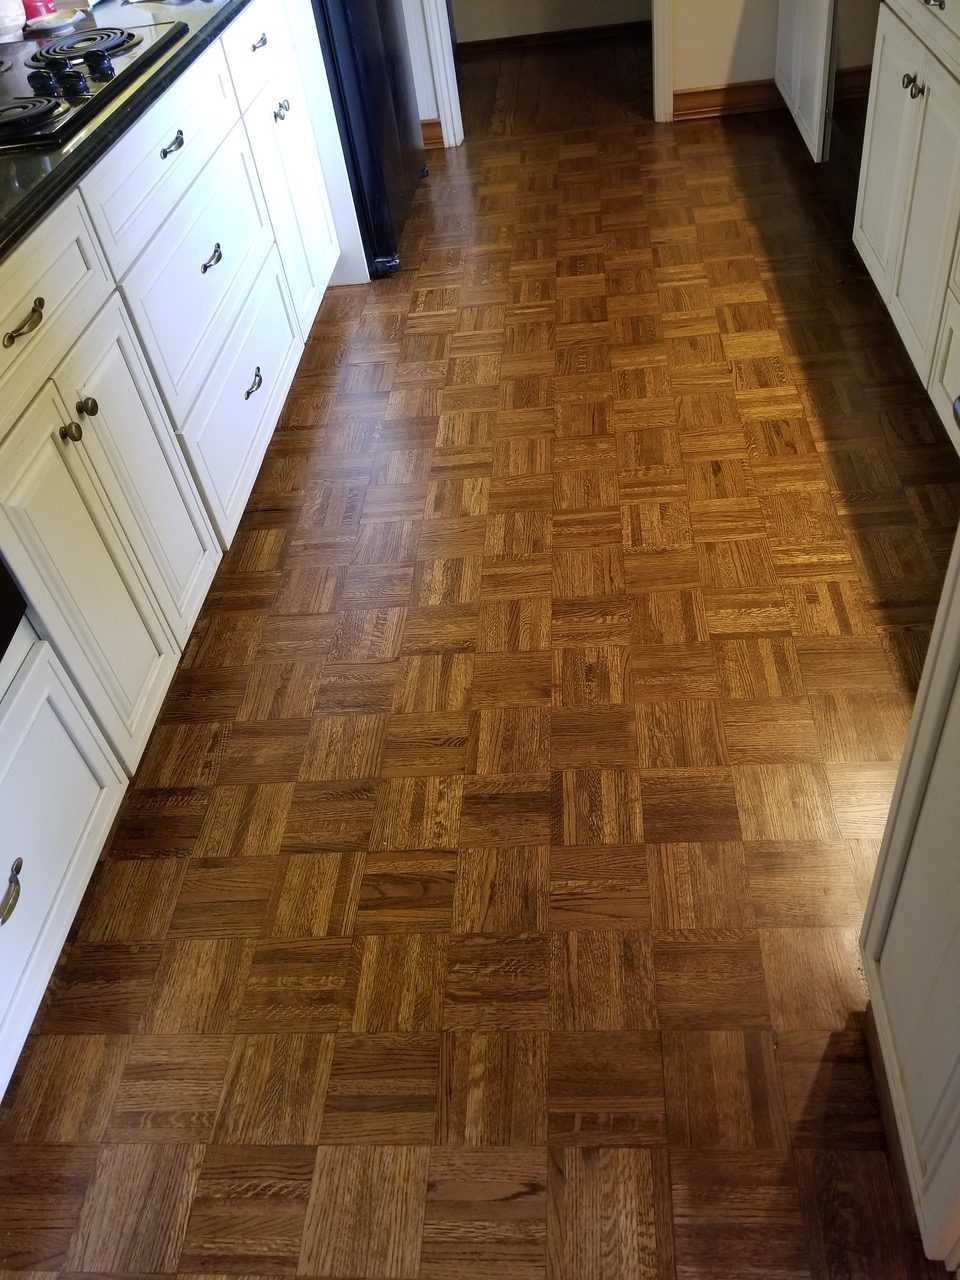 Red Oak Parque Flooring: Sand and refinished with hand-rub stain application and 3-coats of high-grade water-based finish Installed in Los Altos kitchen dinnet, 270 square feet.